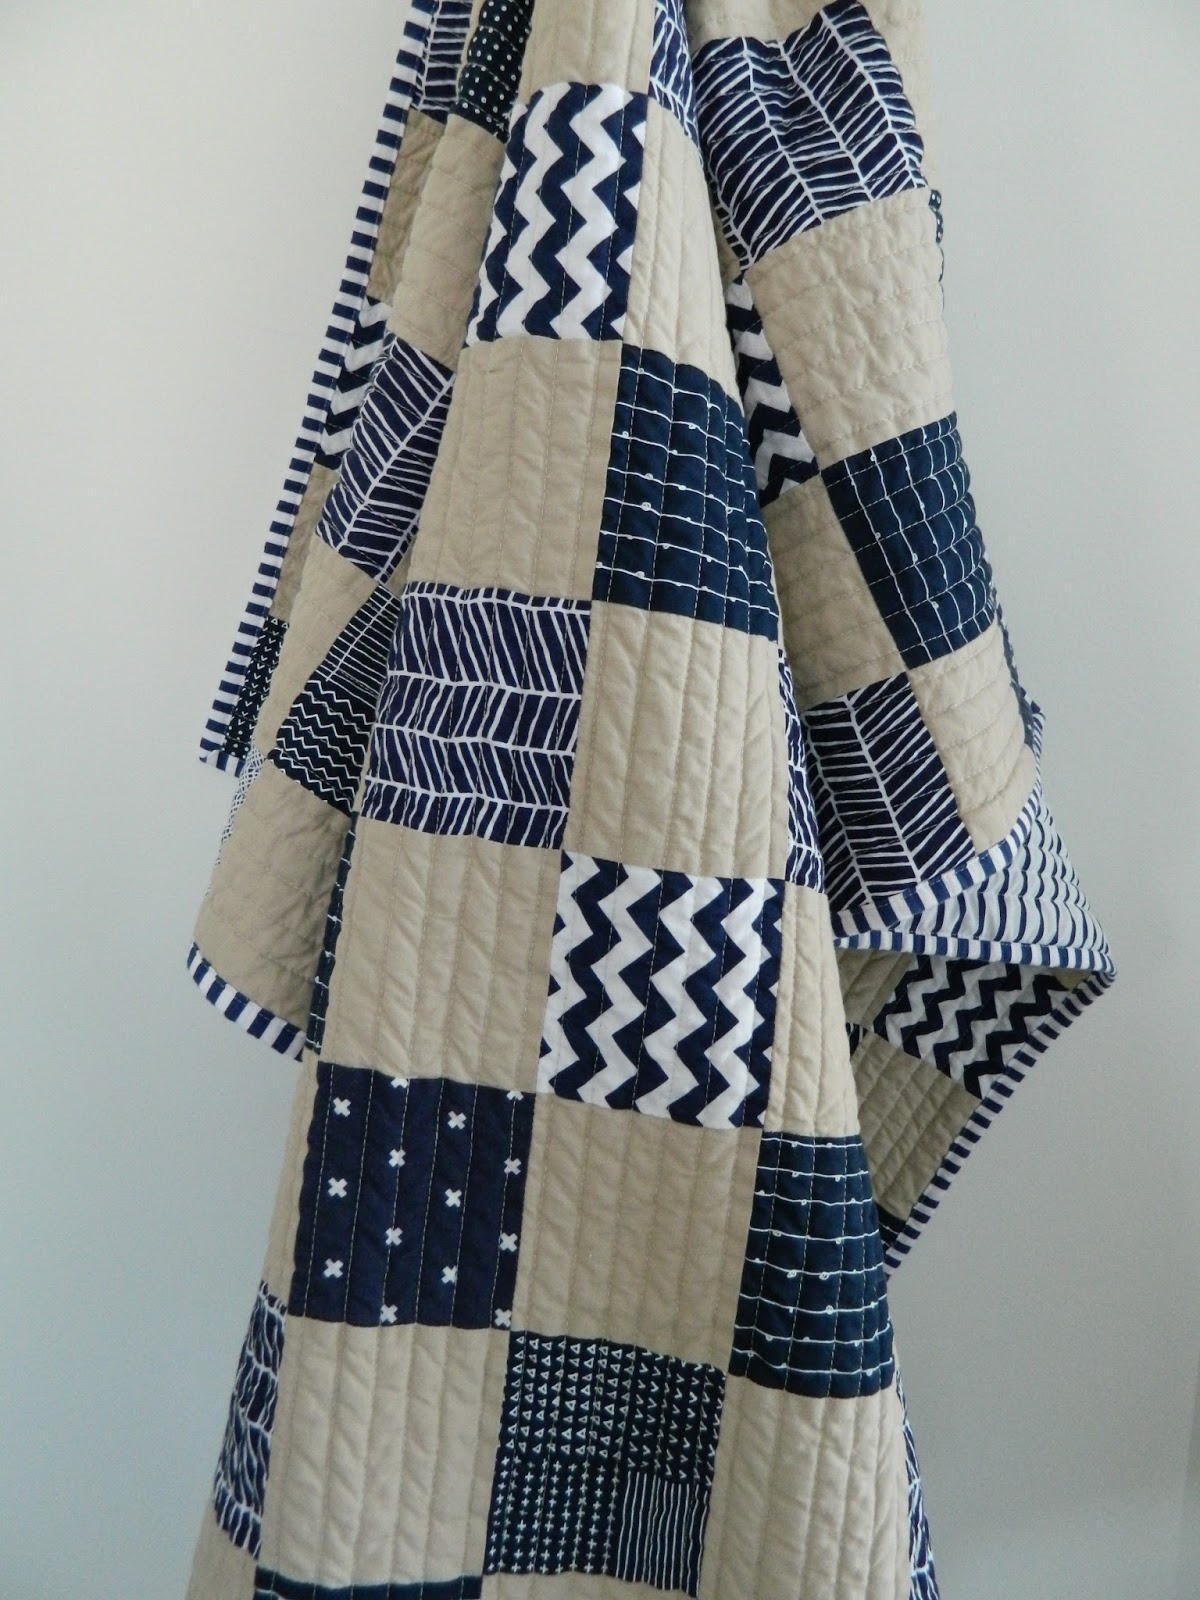 S O T A K Handmade Navy Parchment Baby Quilt